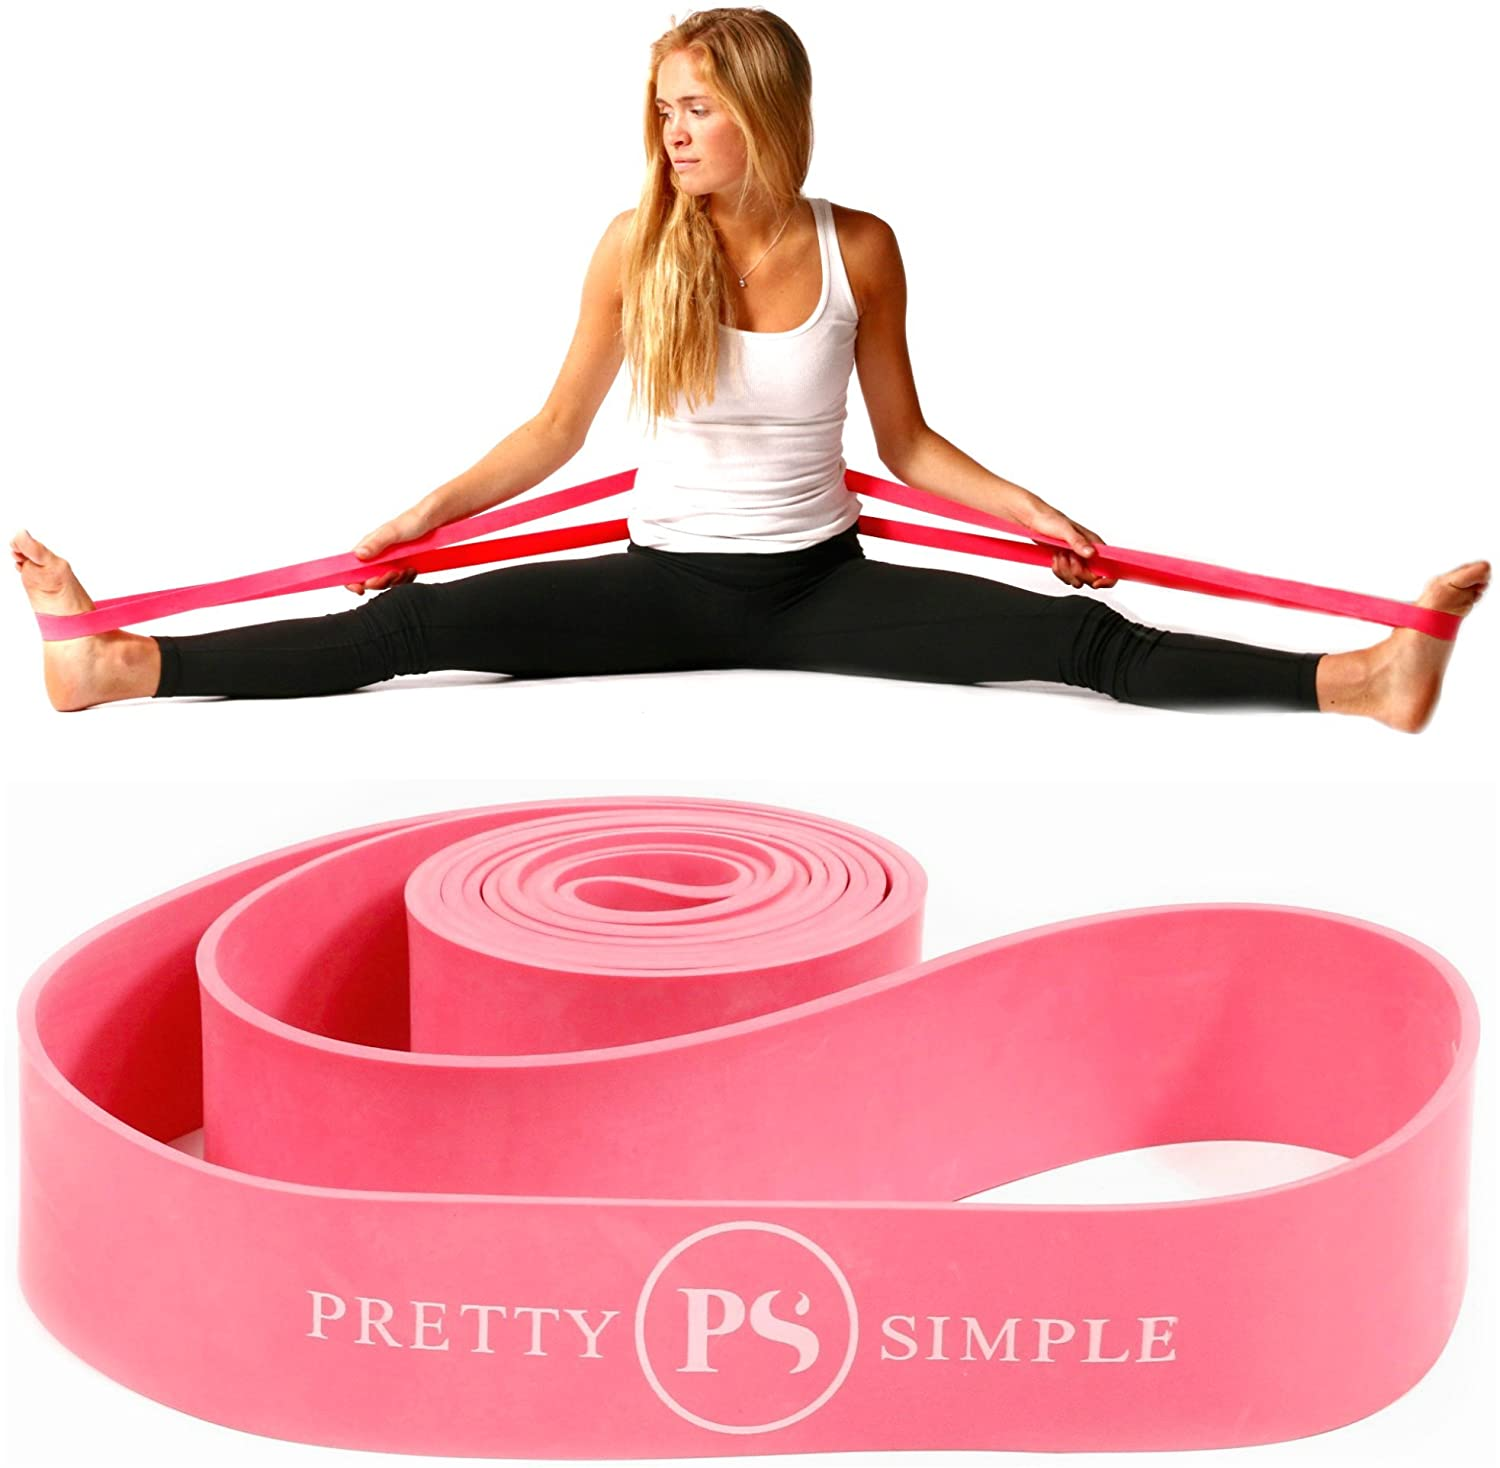 Exercise Stretch Bands for Physical Therapy 2 Resistance Bands for Dance and Ballet Fitness Bands for Stretching Gym Gymnastics Dance Stretch Band for Recovery